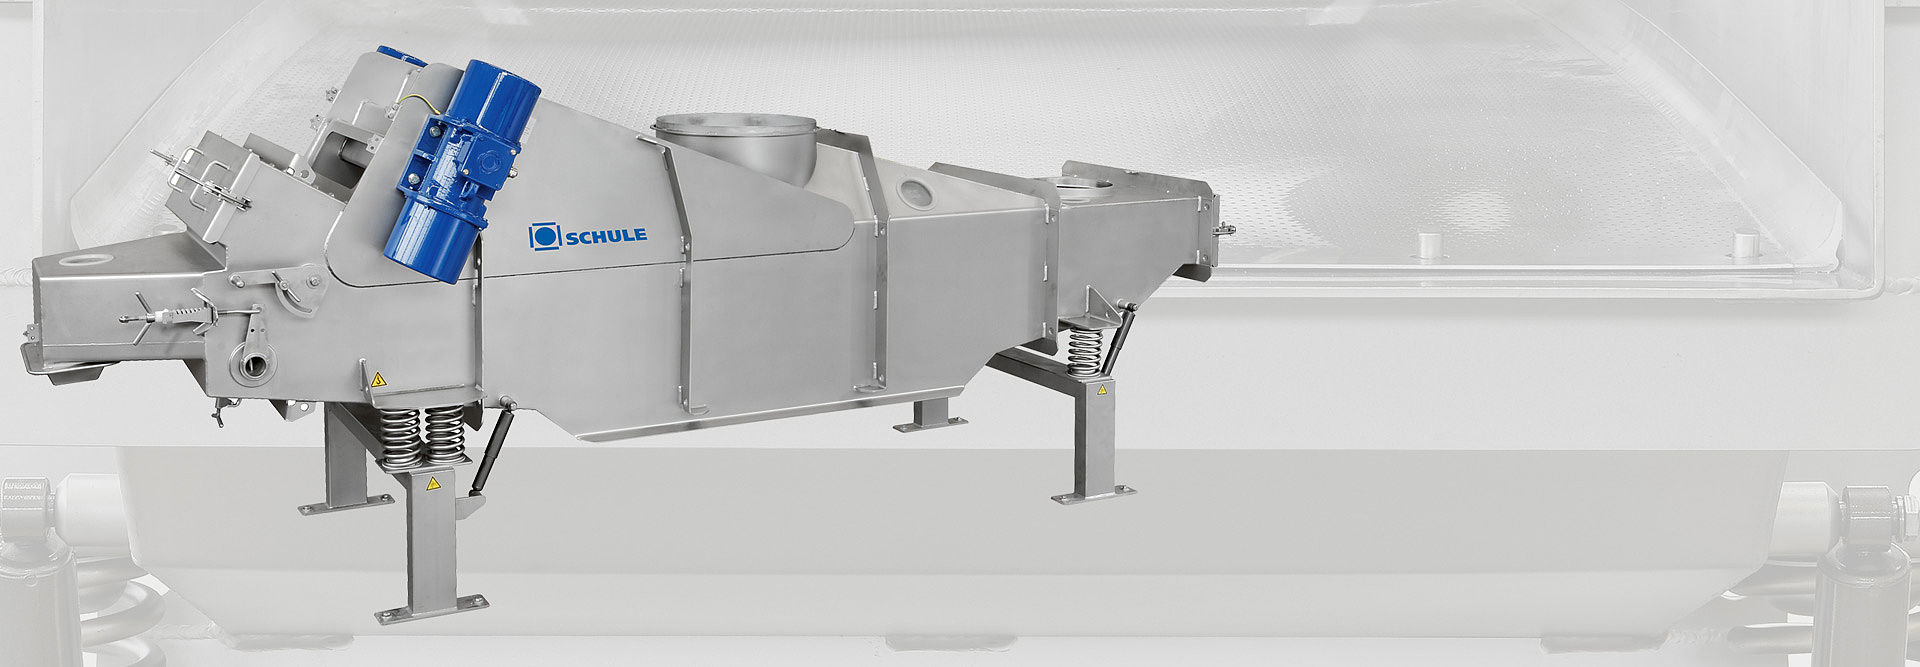 Picture of a SCHULE fluidised bed cooler